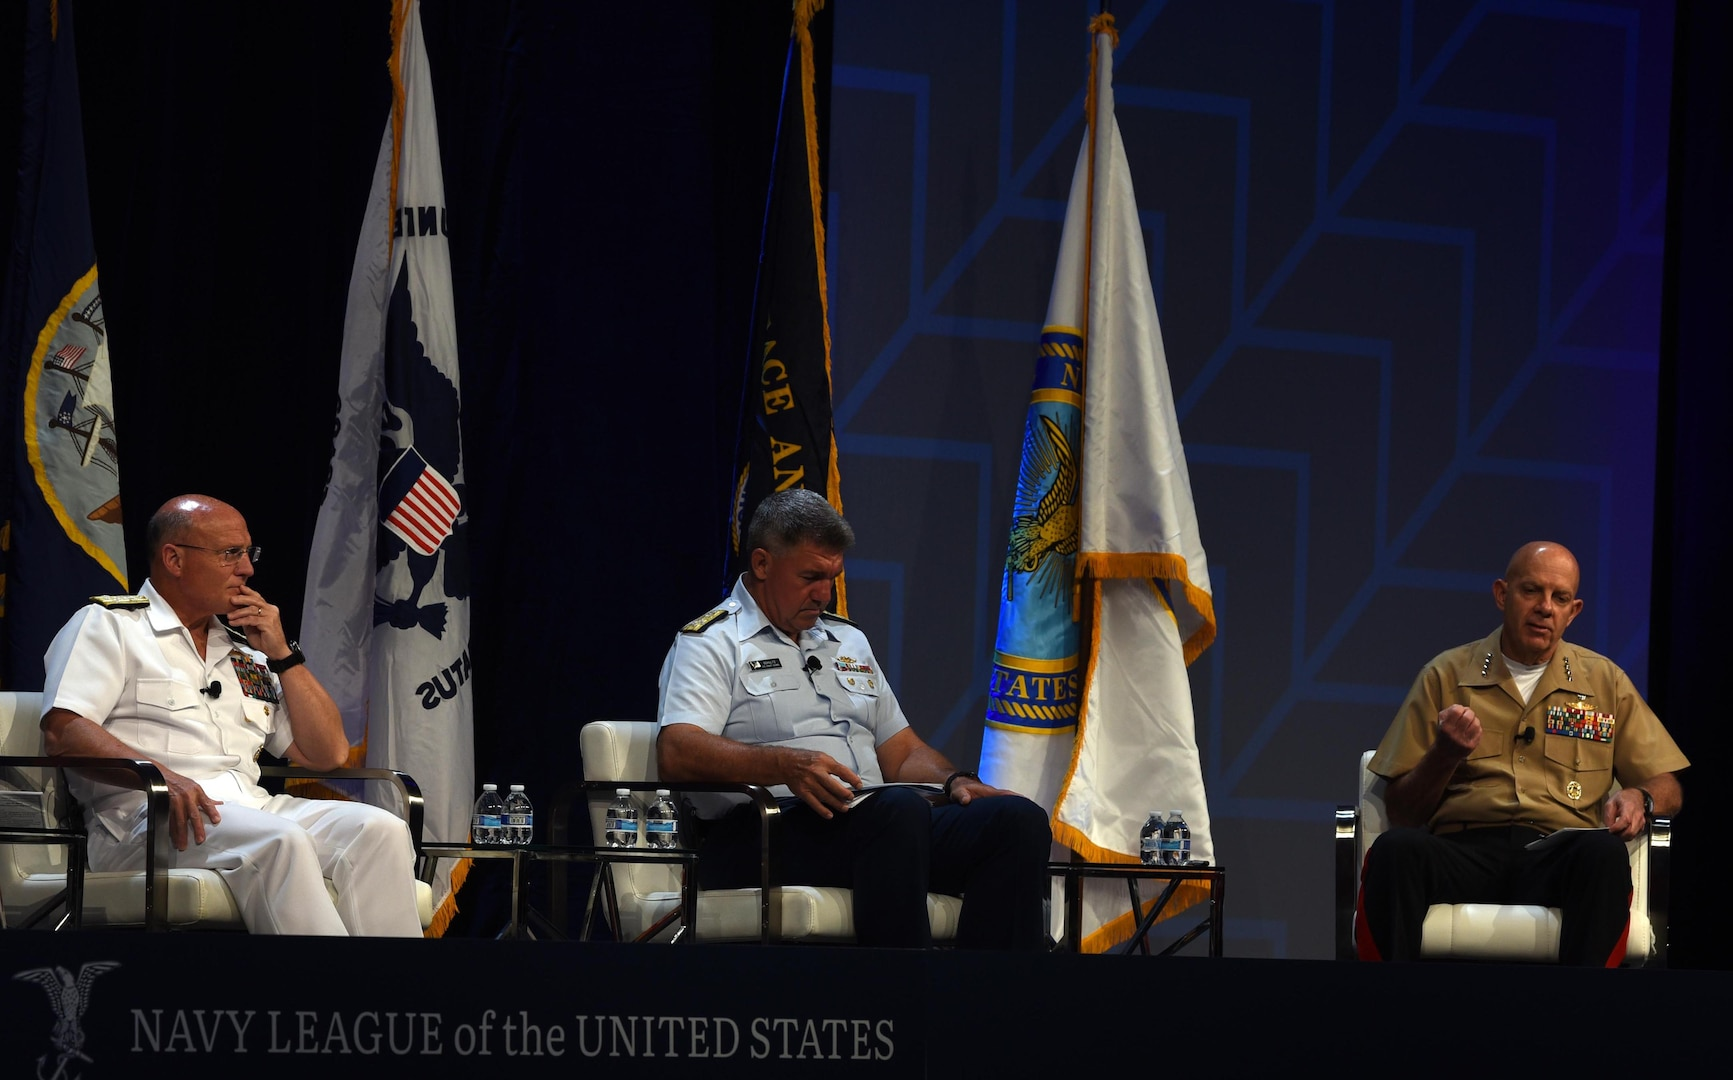 Leaders Discuss Tri-Service Maritime Strategy to Deterring Conflict